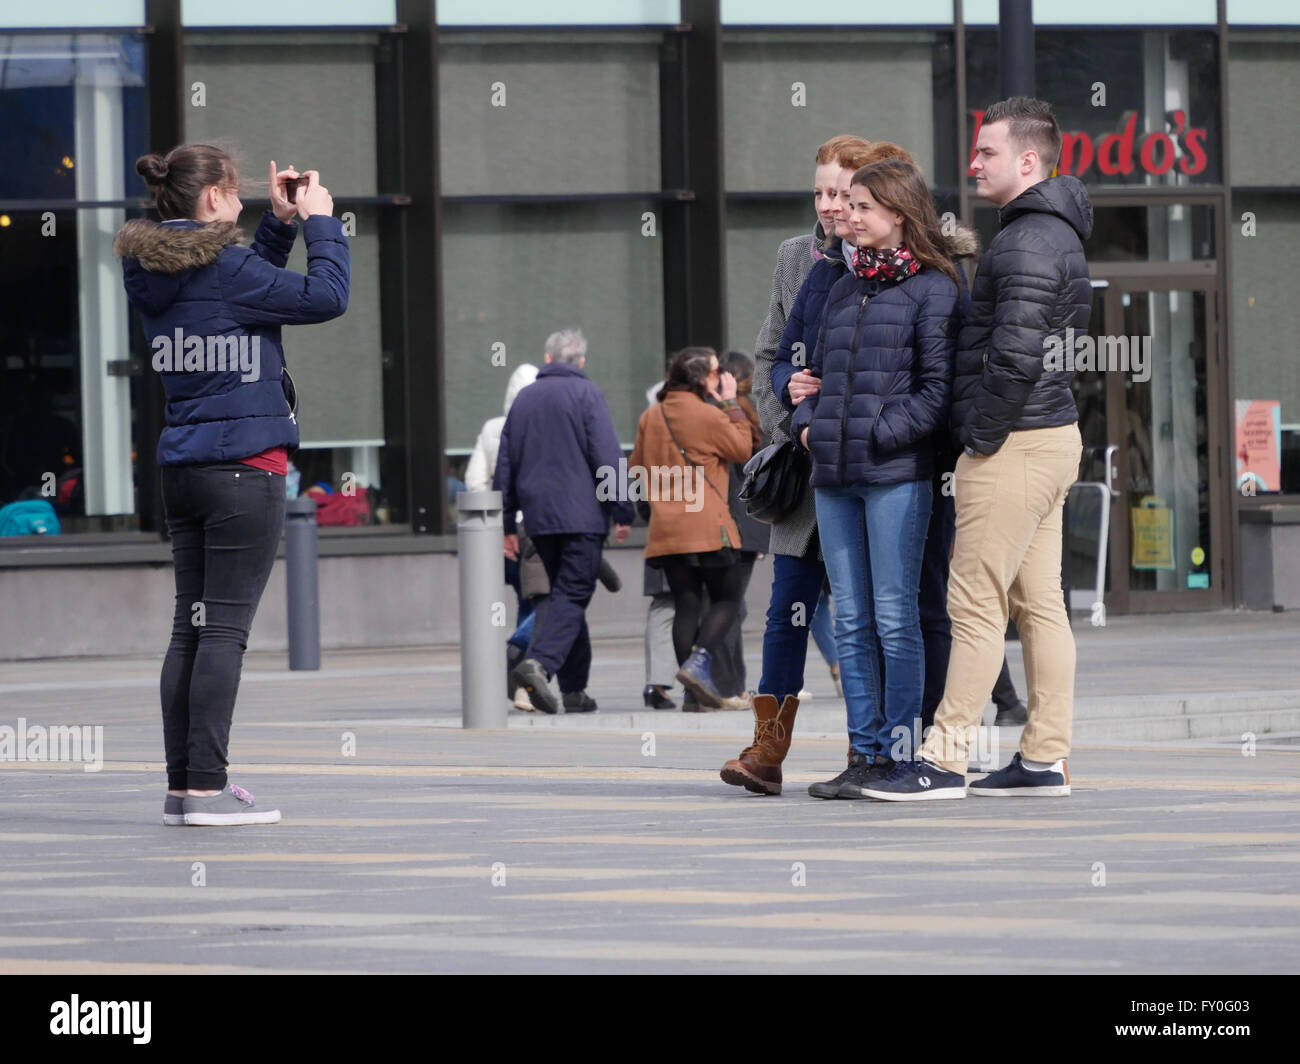 Tourists in Greenwich London UK - Stock Image